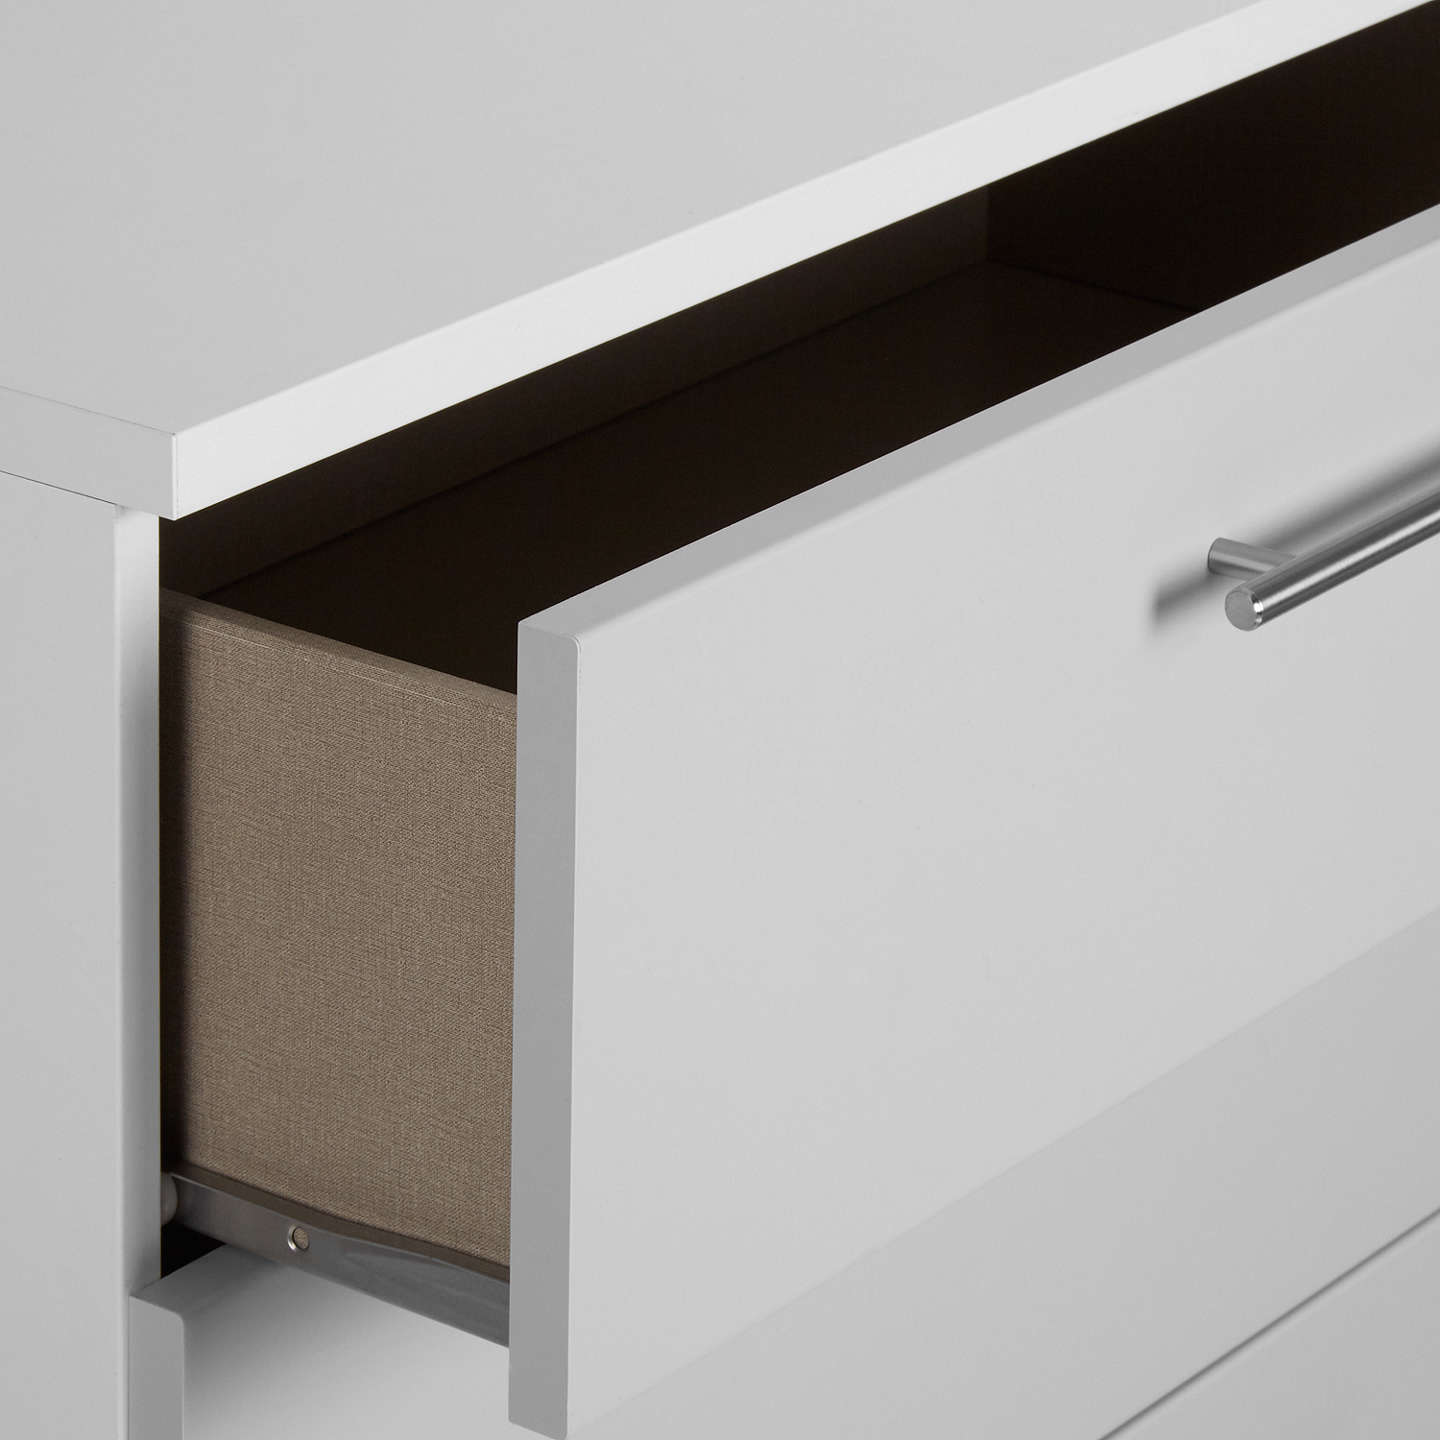 BuyHouse by John Lewis Mix it T-Bar Handle Wide 4 Drawer Chest, House Smoke/Matt White Online at johnlewis.com